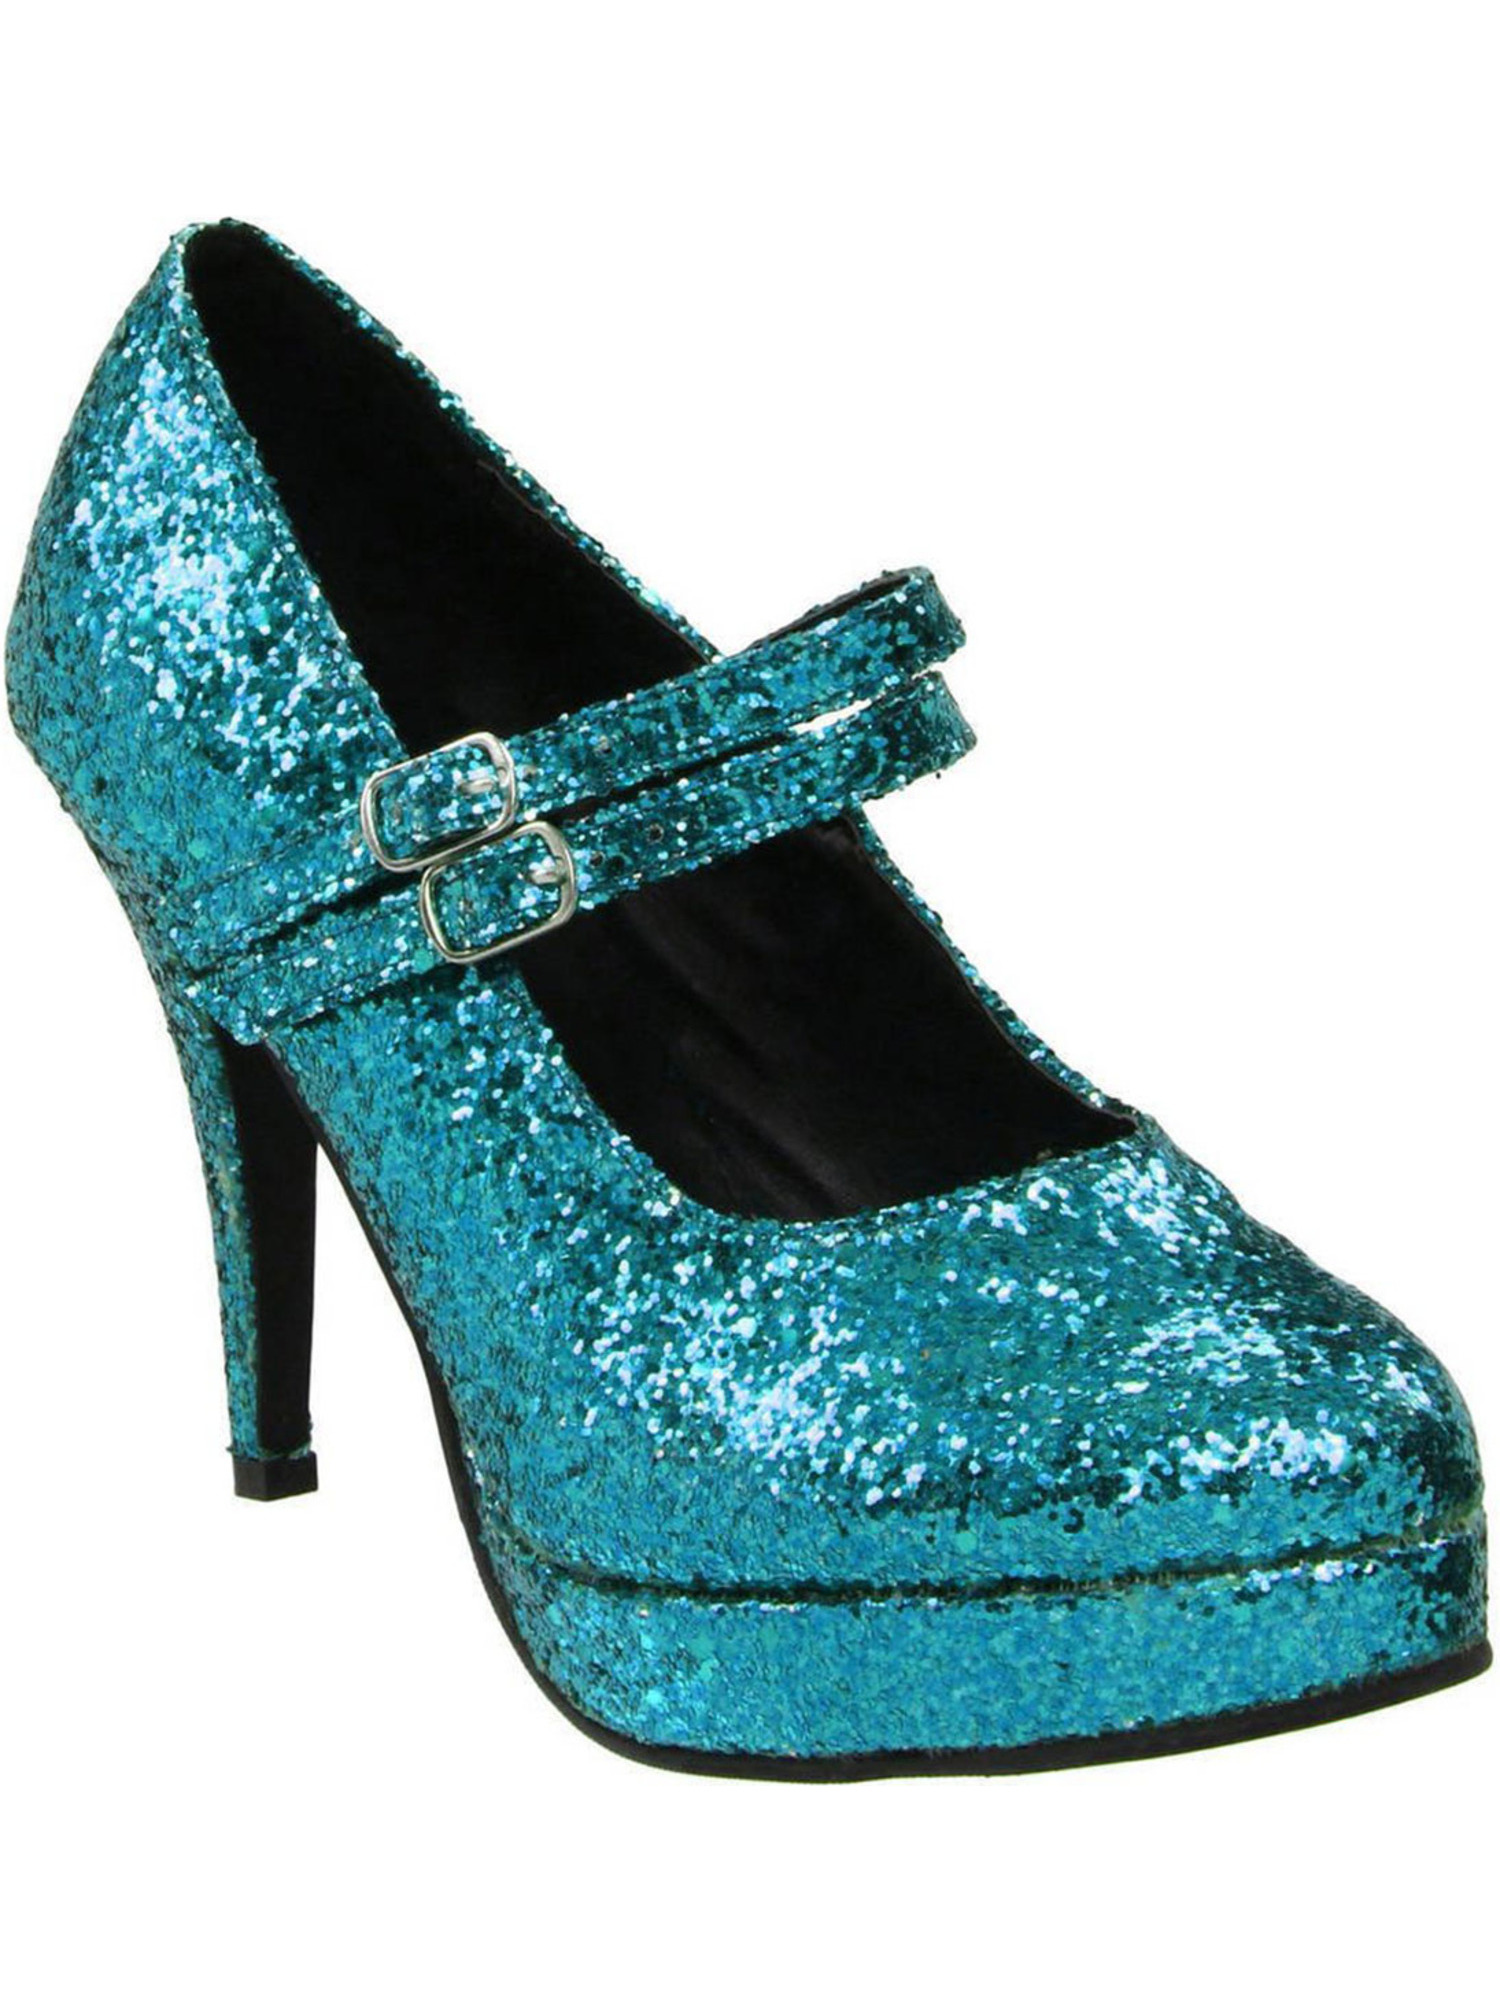 Frosty Ice Blue Glitter Heels Women's Dual Strap Mary Jane Shoes with 4'' Heels